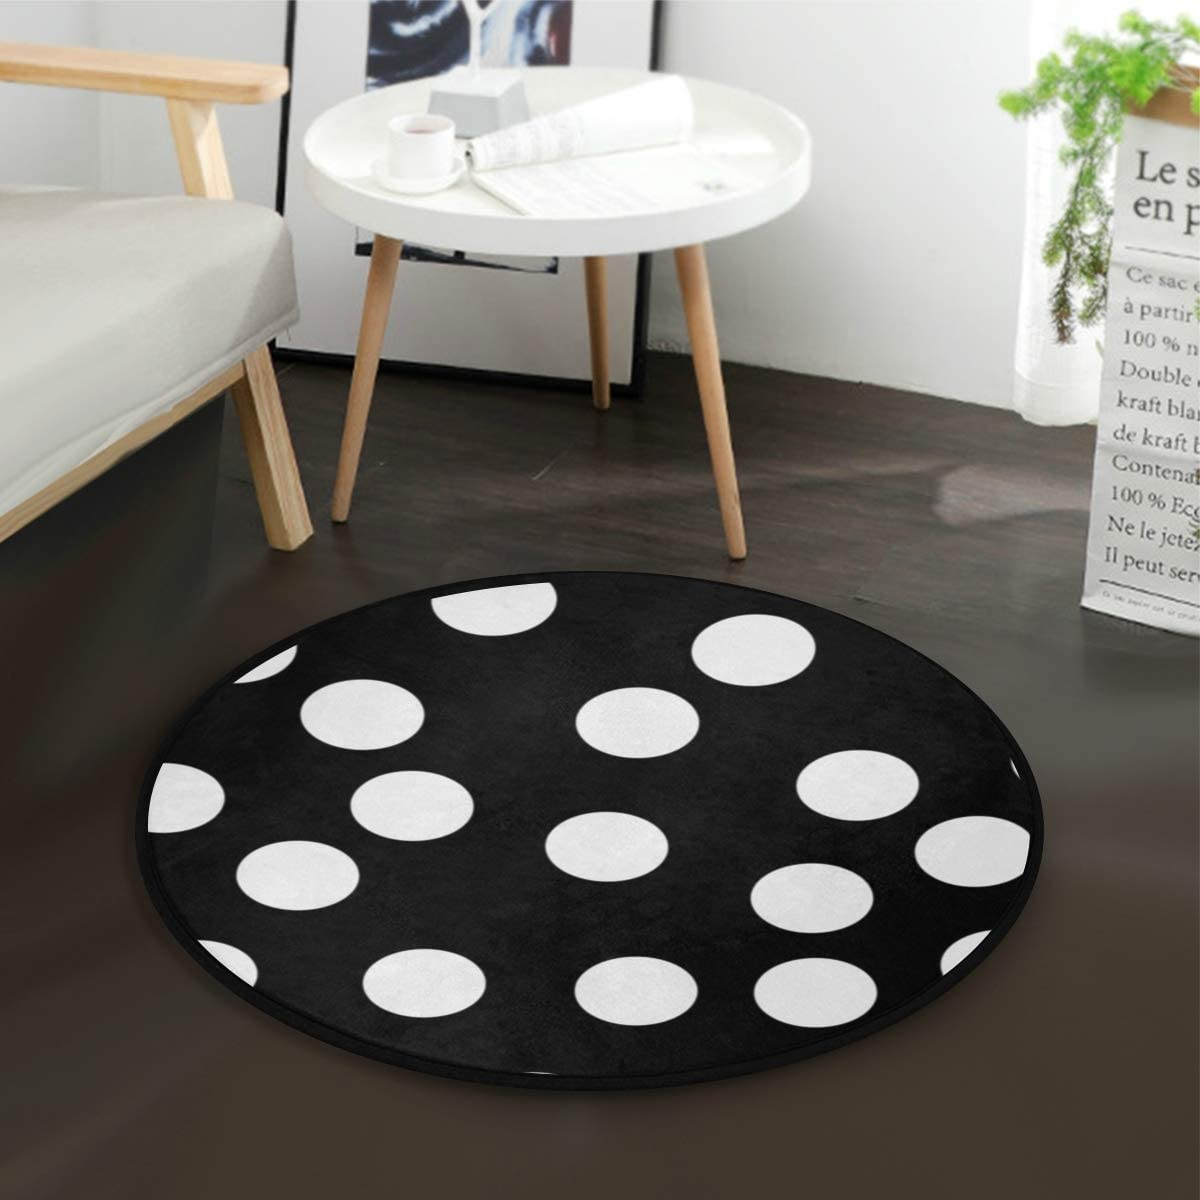 White Black Polka Dot Round Area Rug